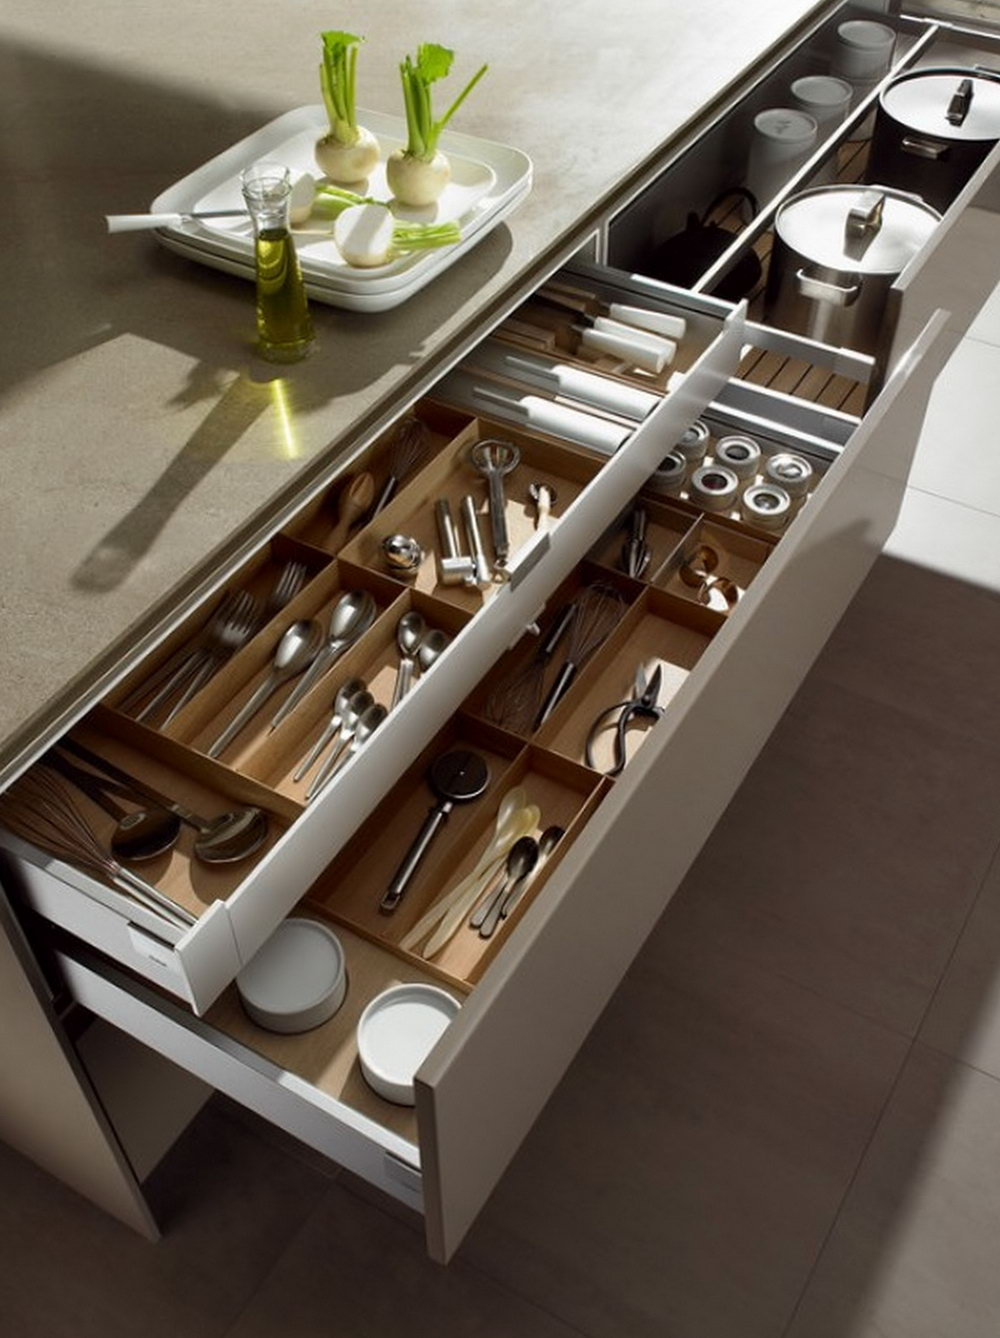 How To Organise Kitchen Cabinets And Drawers